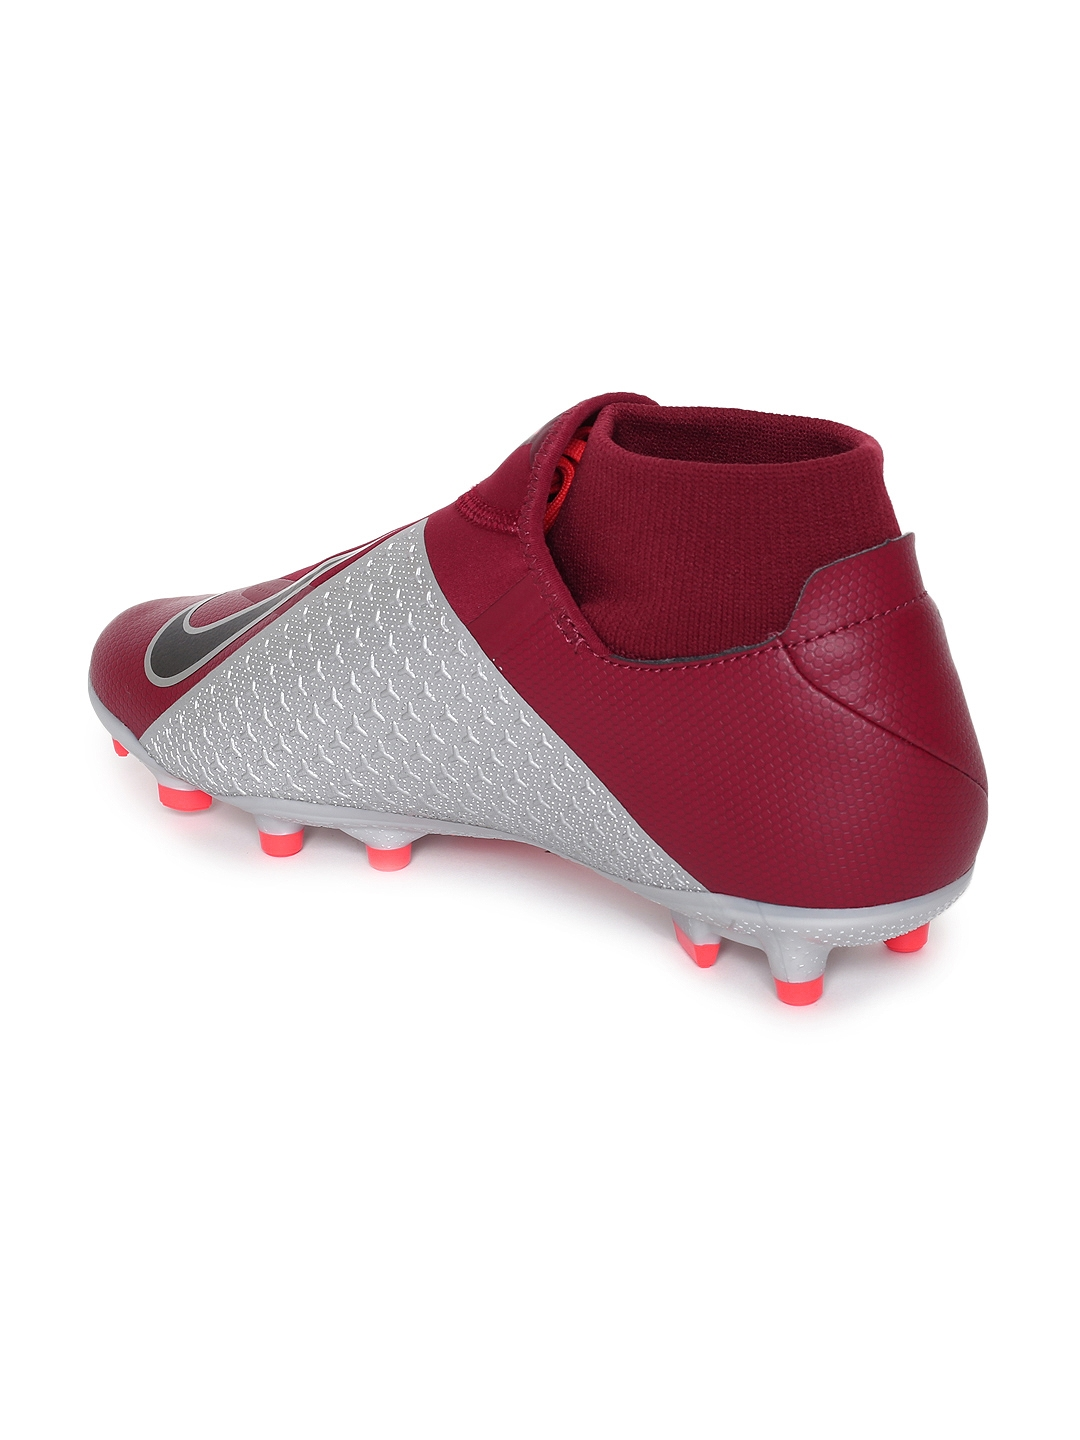 Buy Nike Unisex Red OBRA 3 ACADEMY DF MG Football Shoes - Sports ... cc5b47f58eb